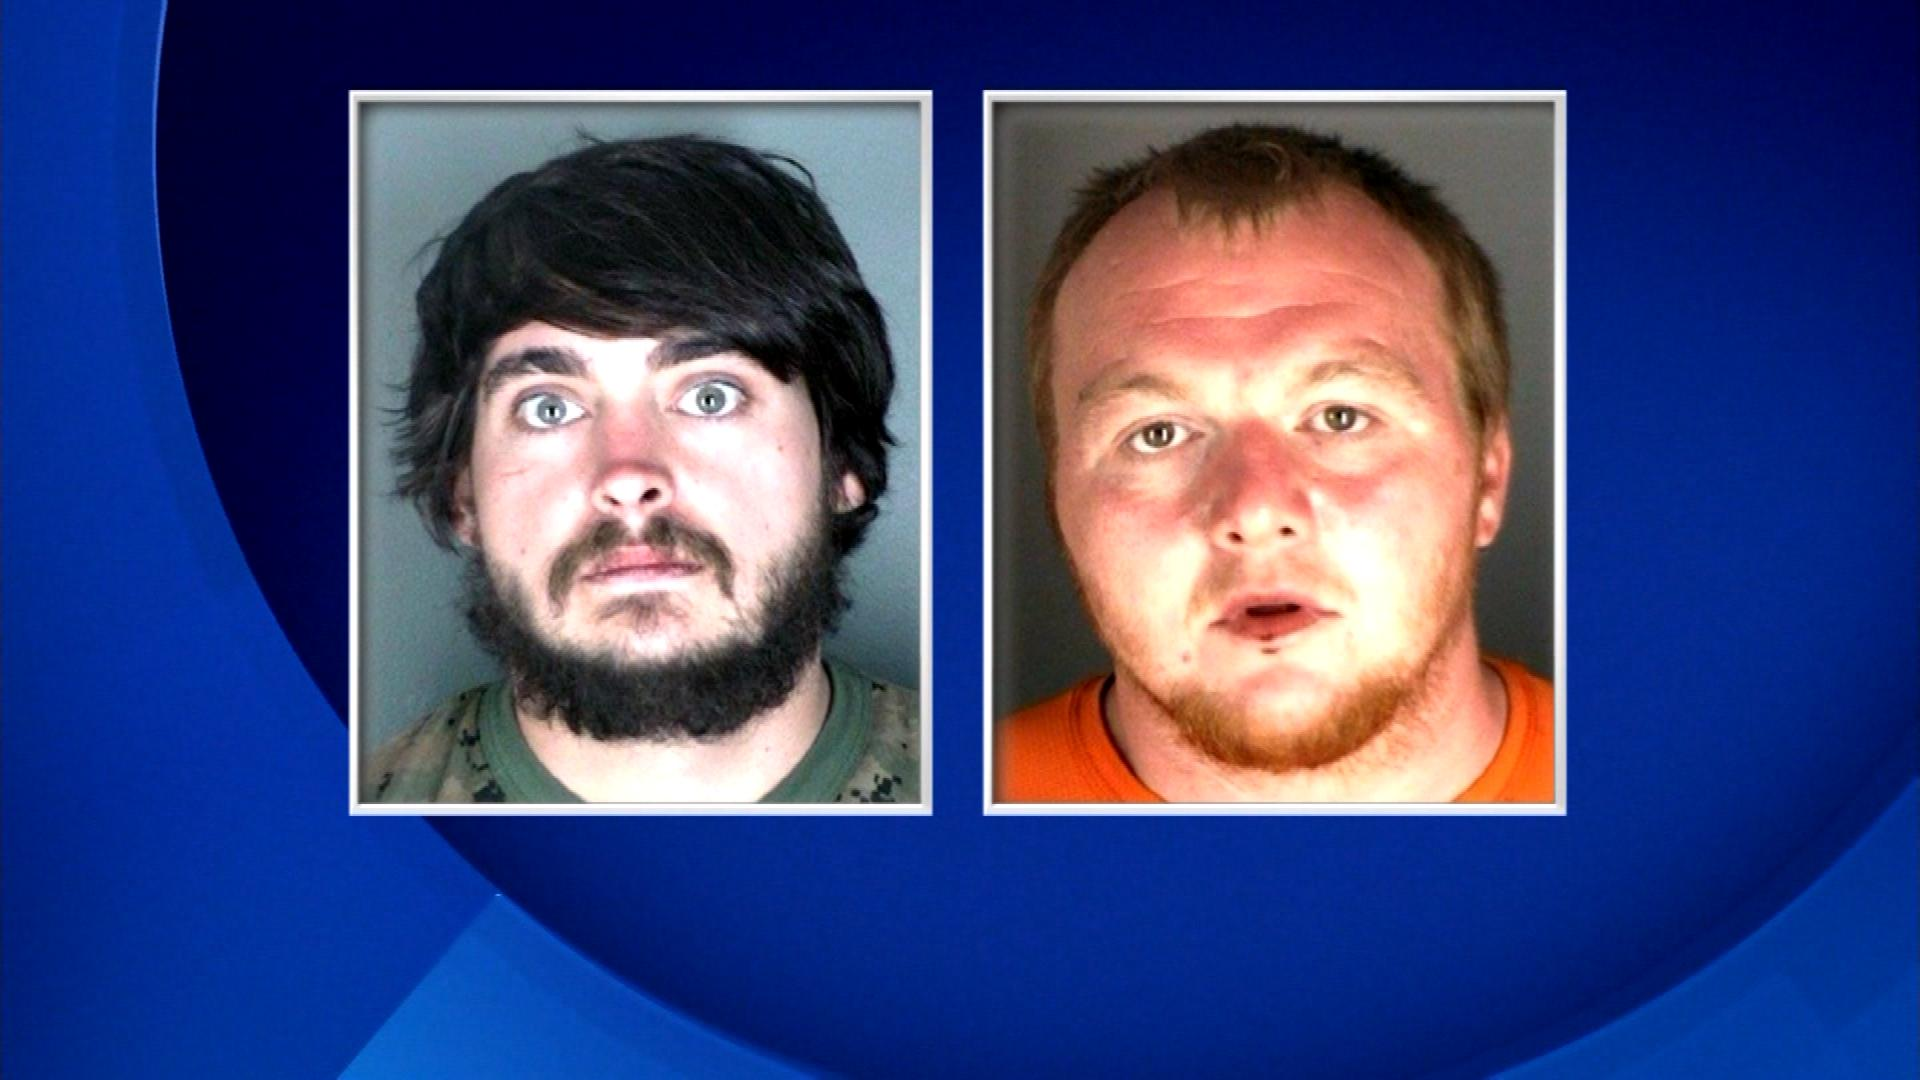 Zachary Ryan Kuykendall, left, and Jimmy Andrew Suggs, right (credit: Boulder County)